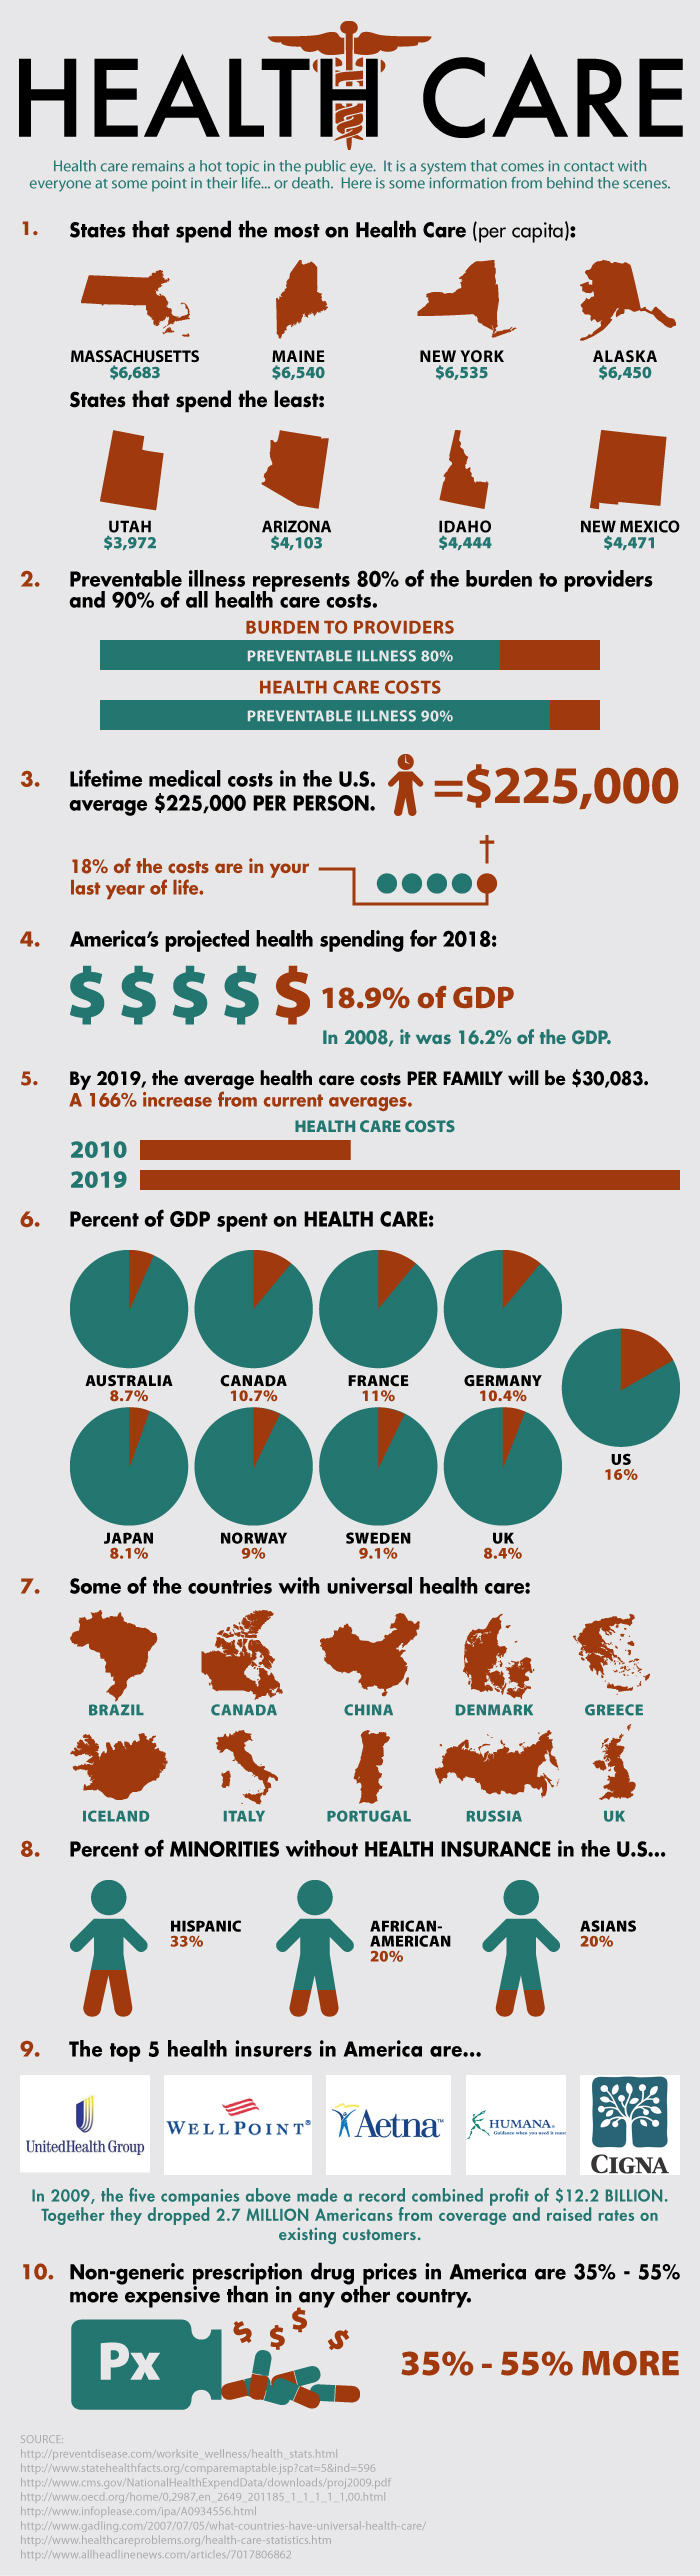 Healthcare Statistics and Average Costs